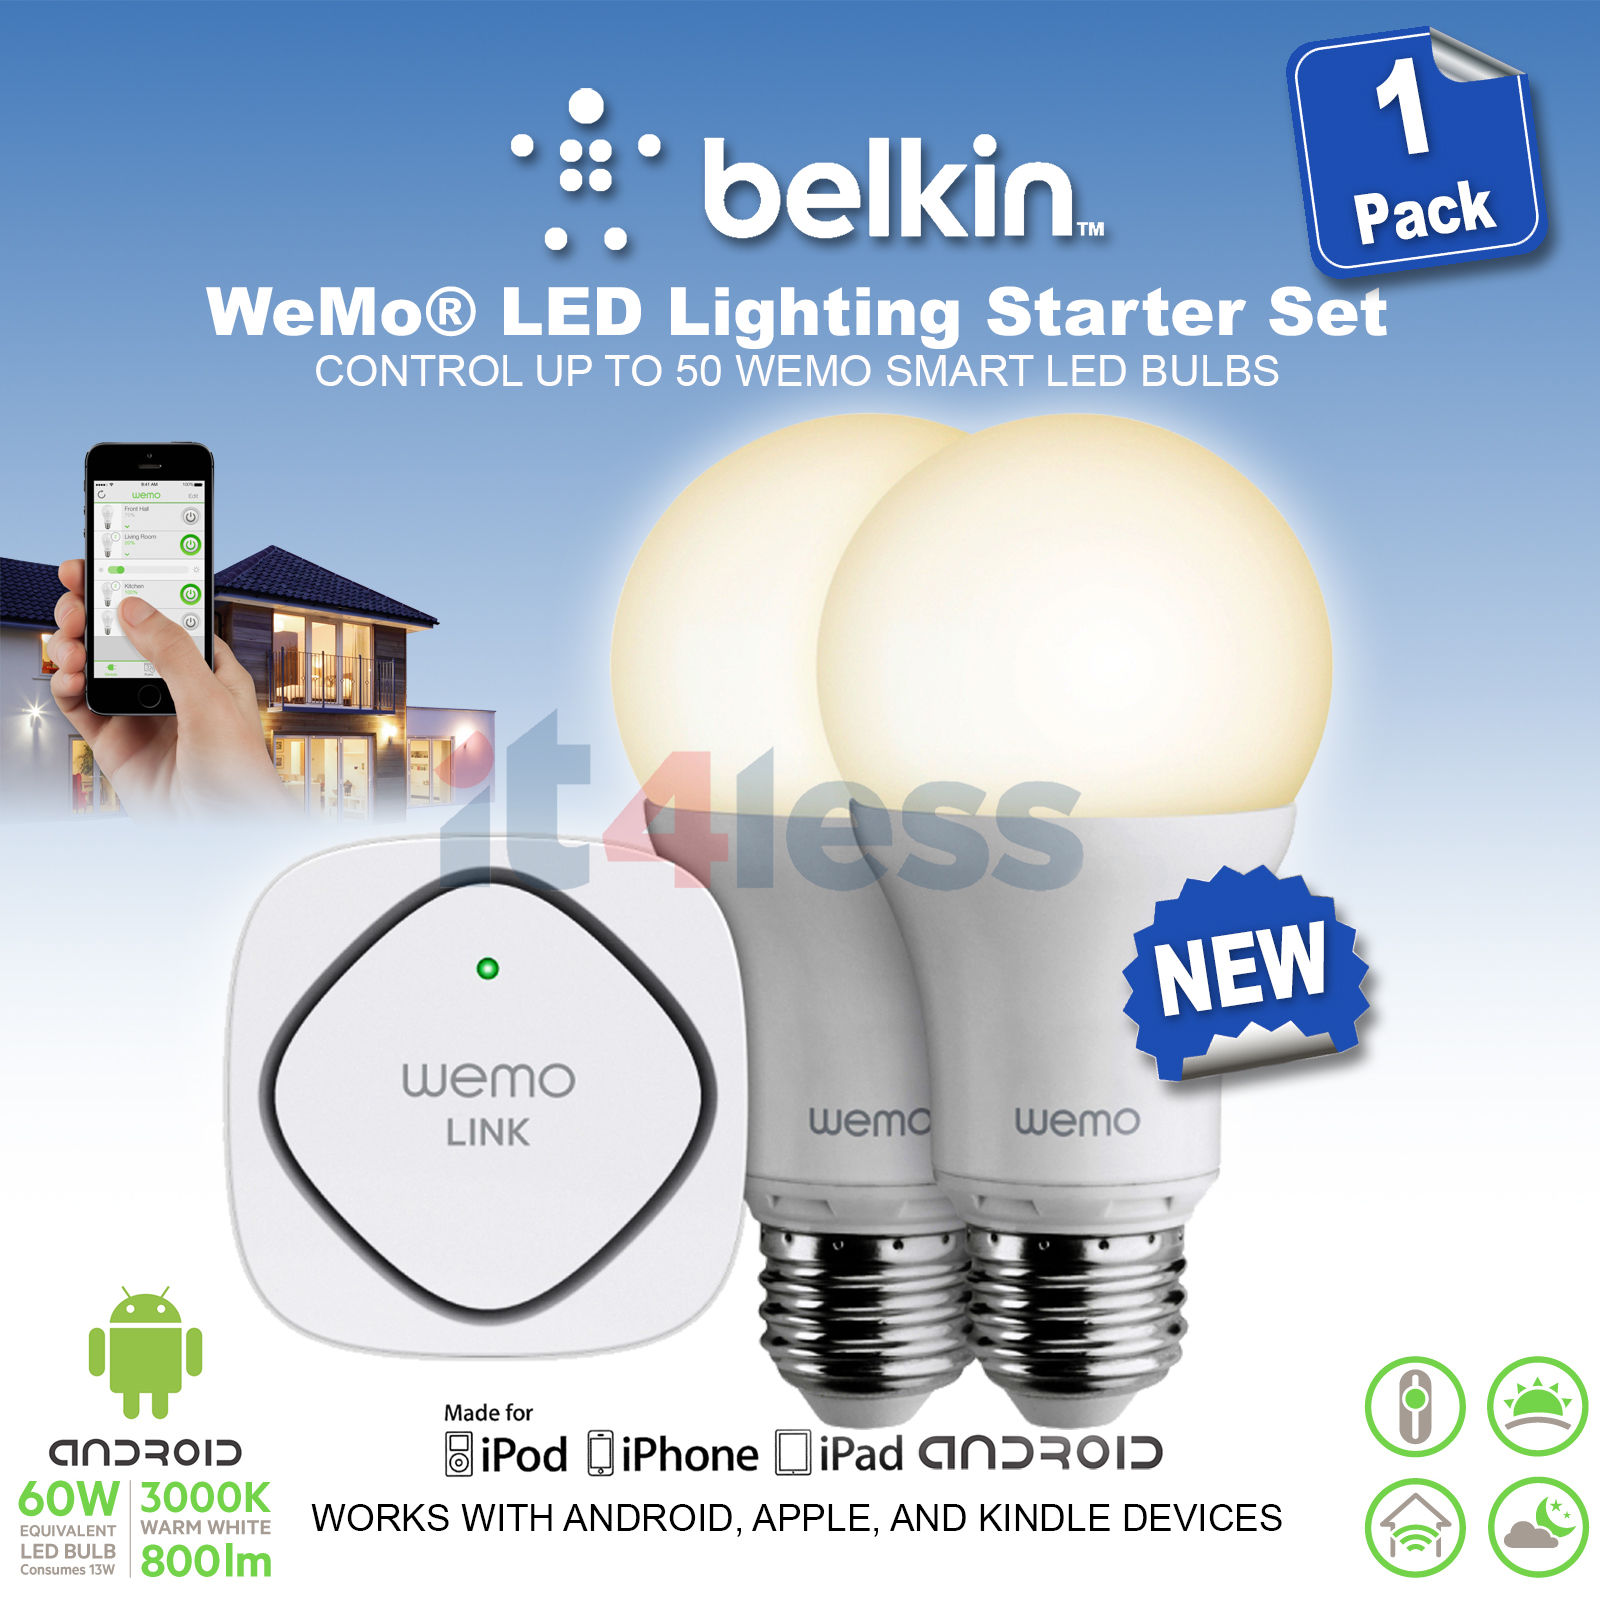 WeMo Smart Lights & Lighting